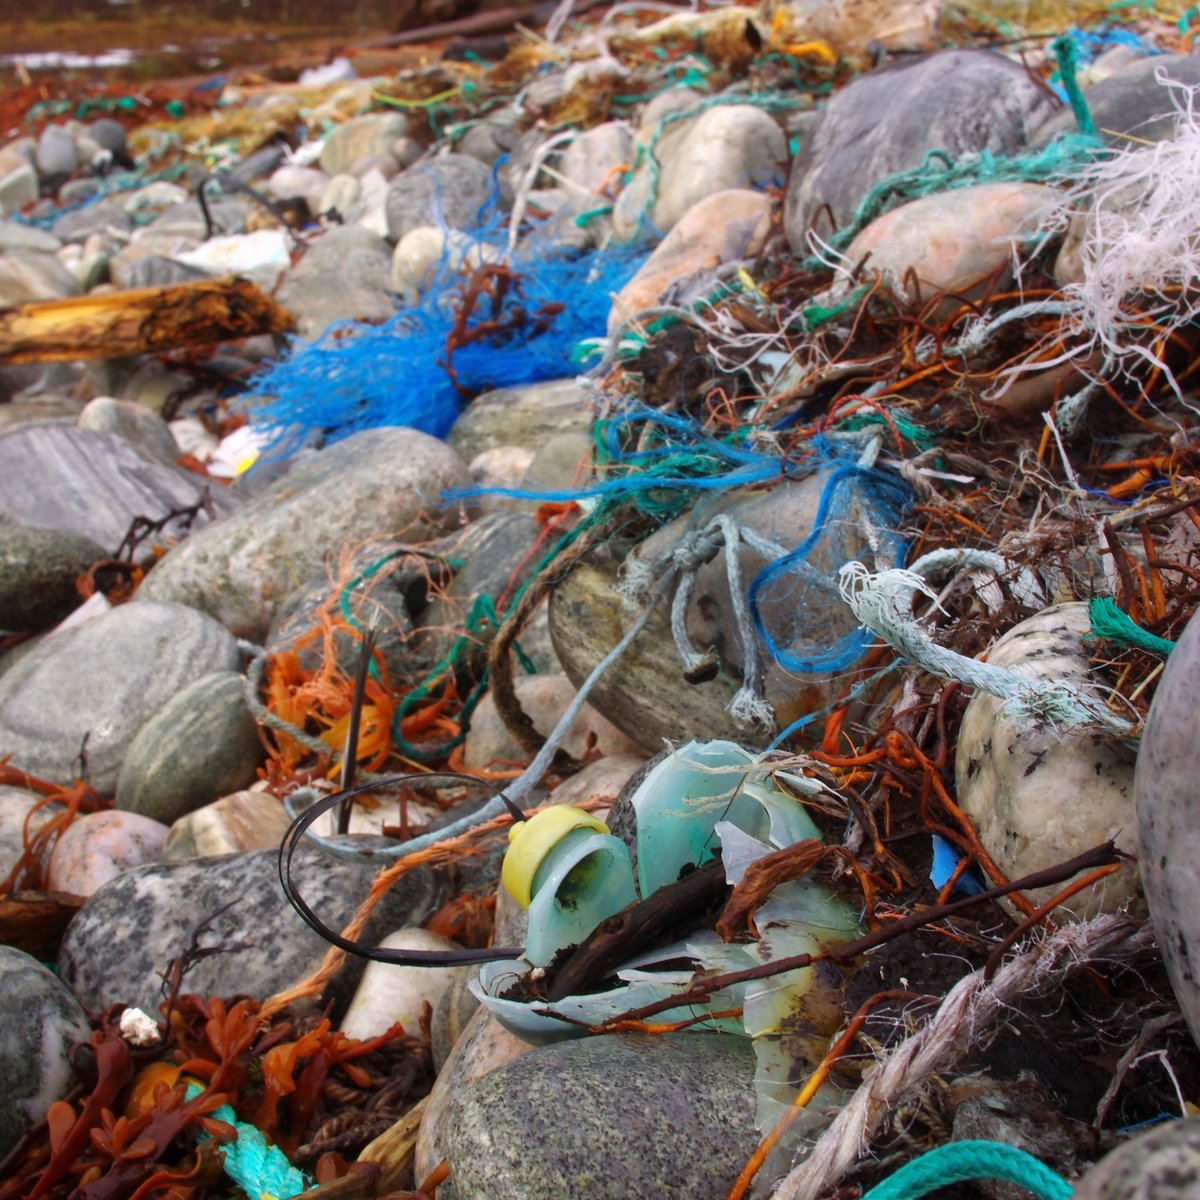 We're still accepting responses for our marine debris survey! Help us out by answering: https://t.co/271yD3Jf8h https://t.co/7ORs5ef9dn